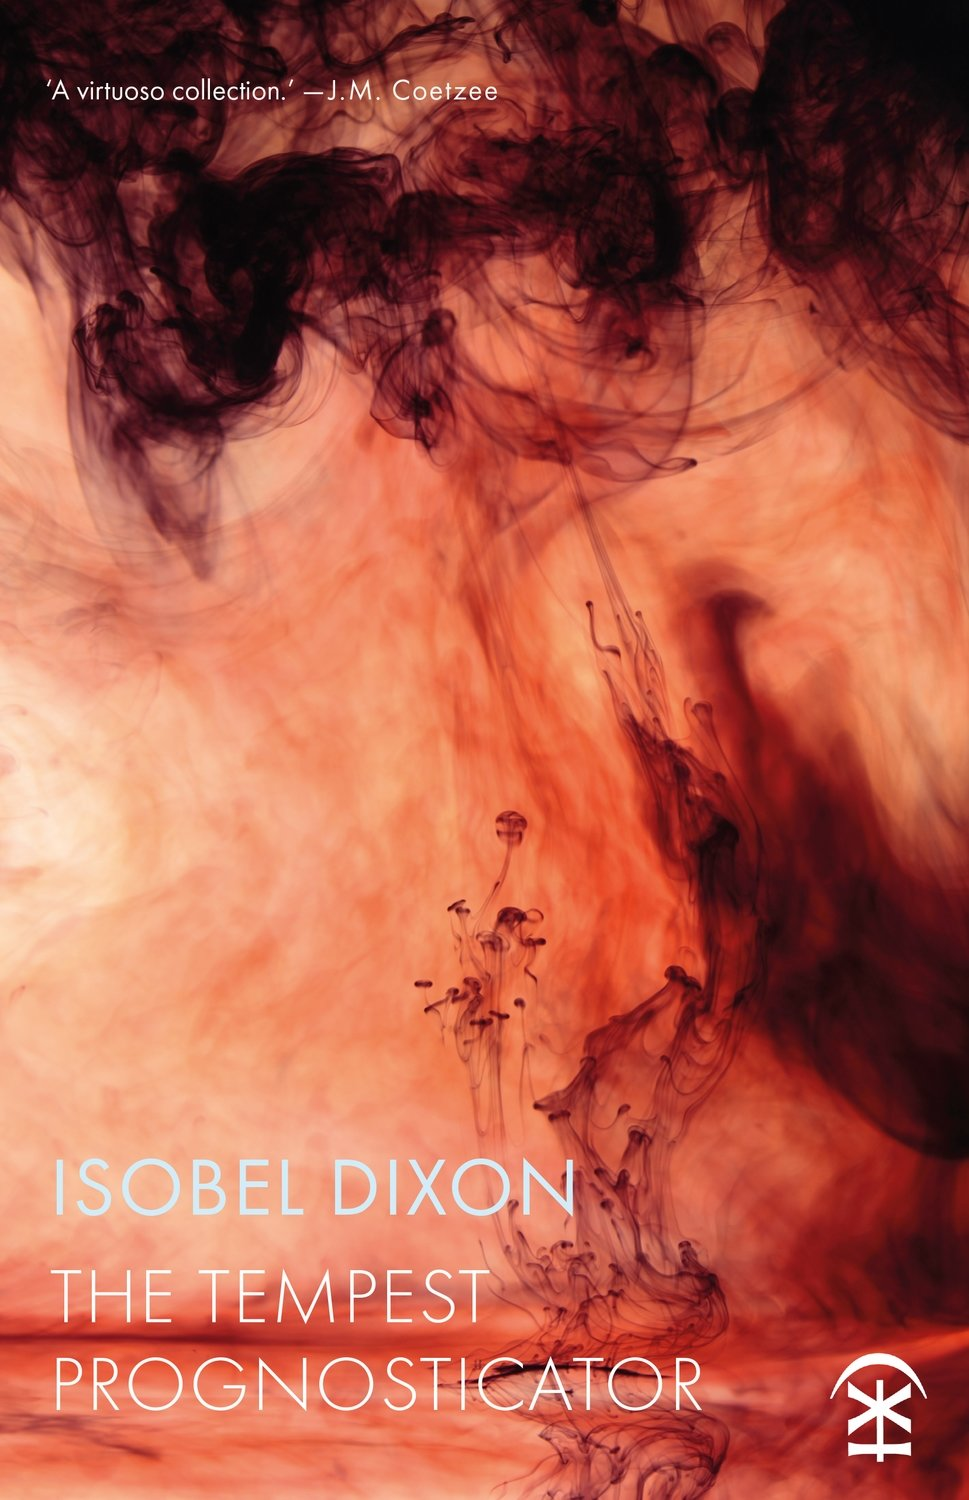 The Tempest Prognosticator - Isobel Dixon